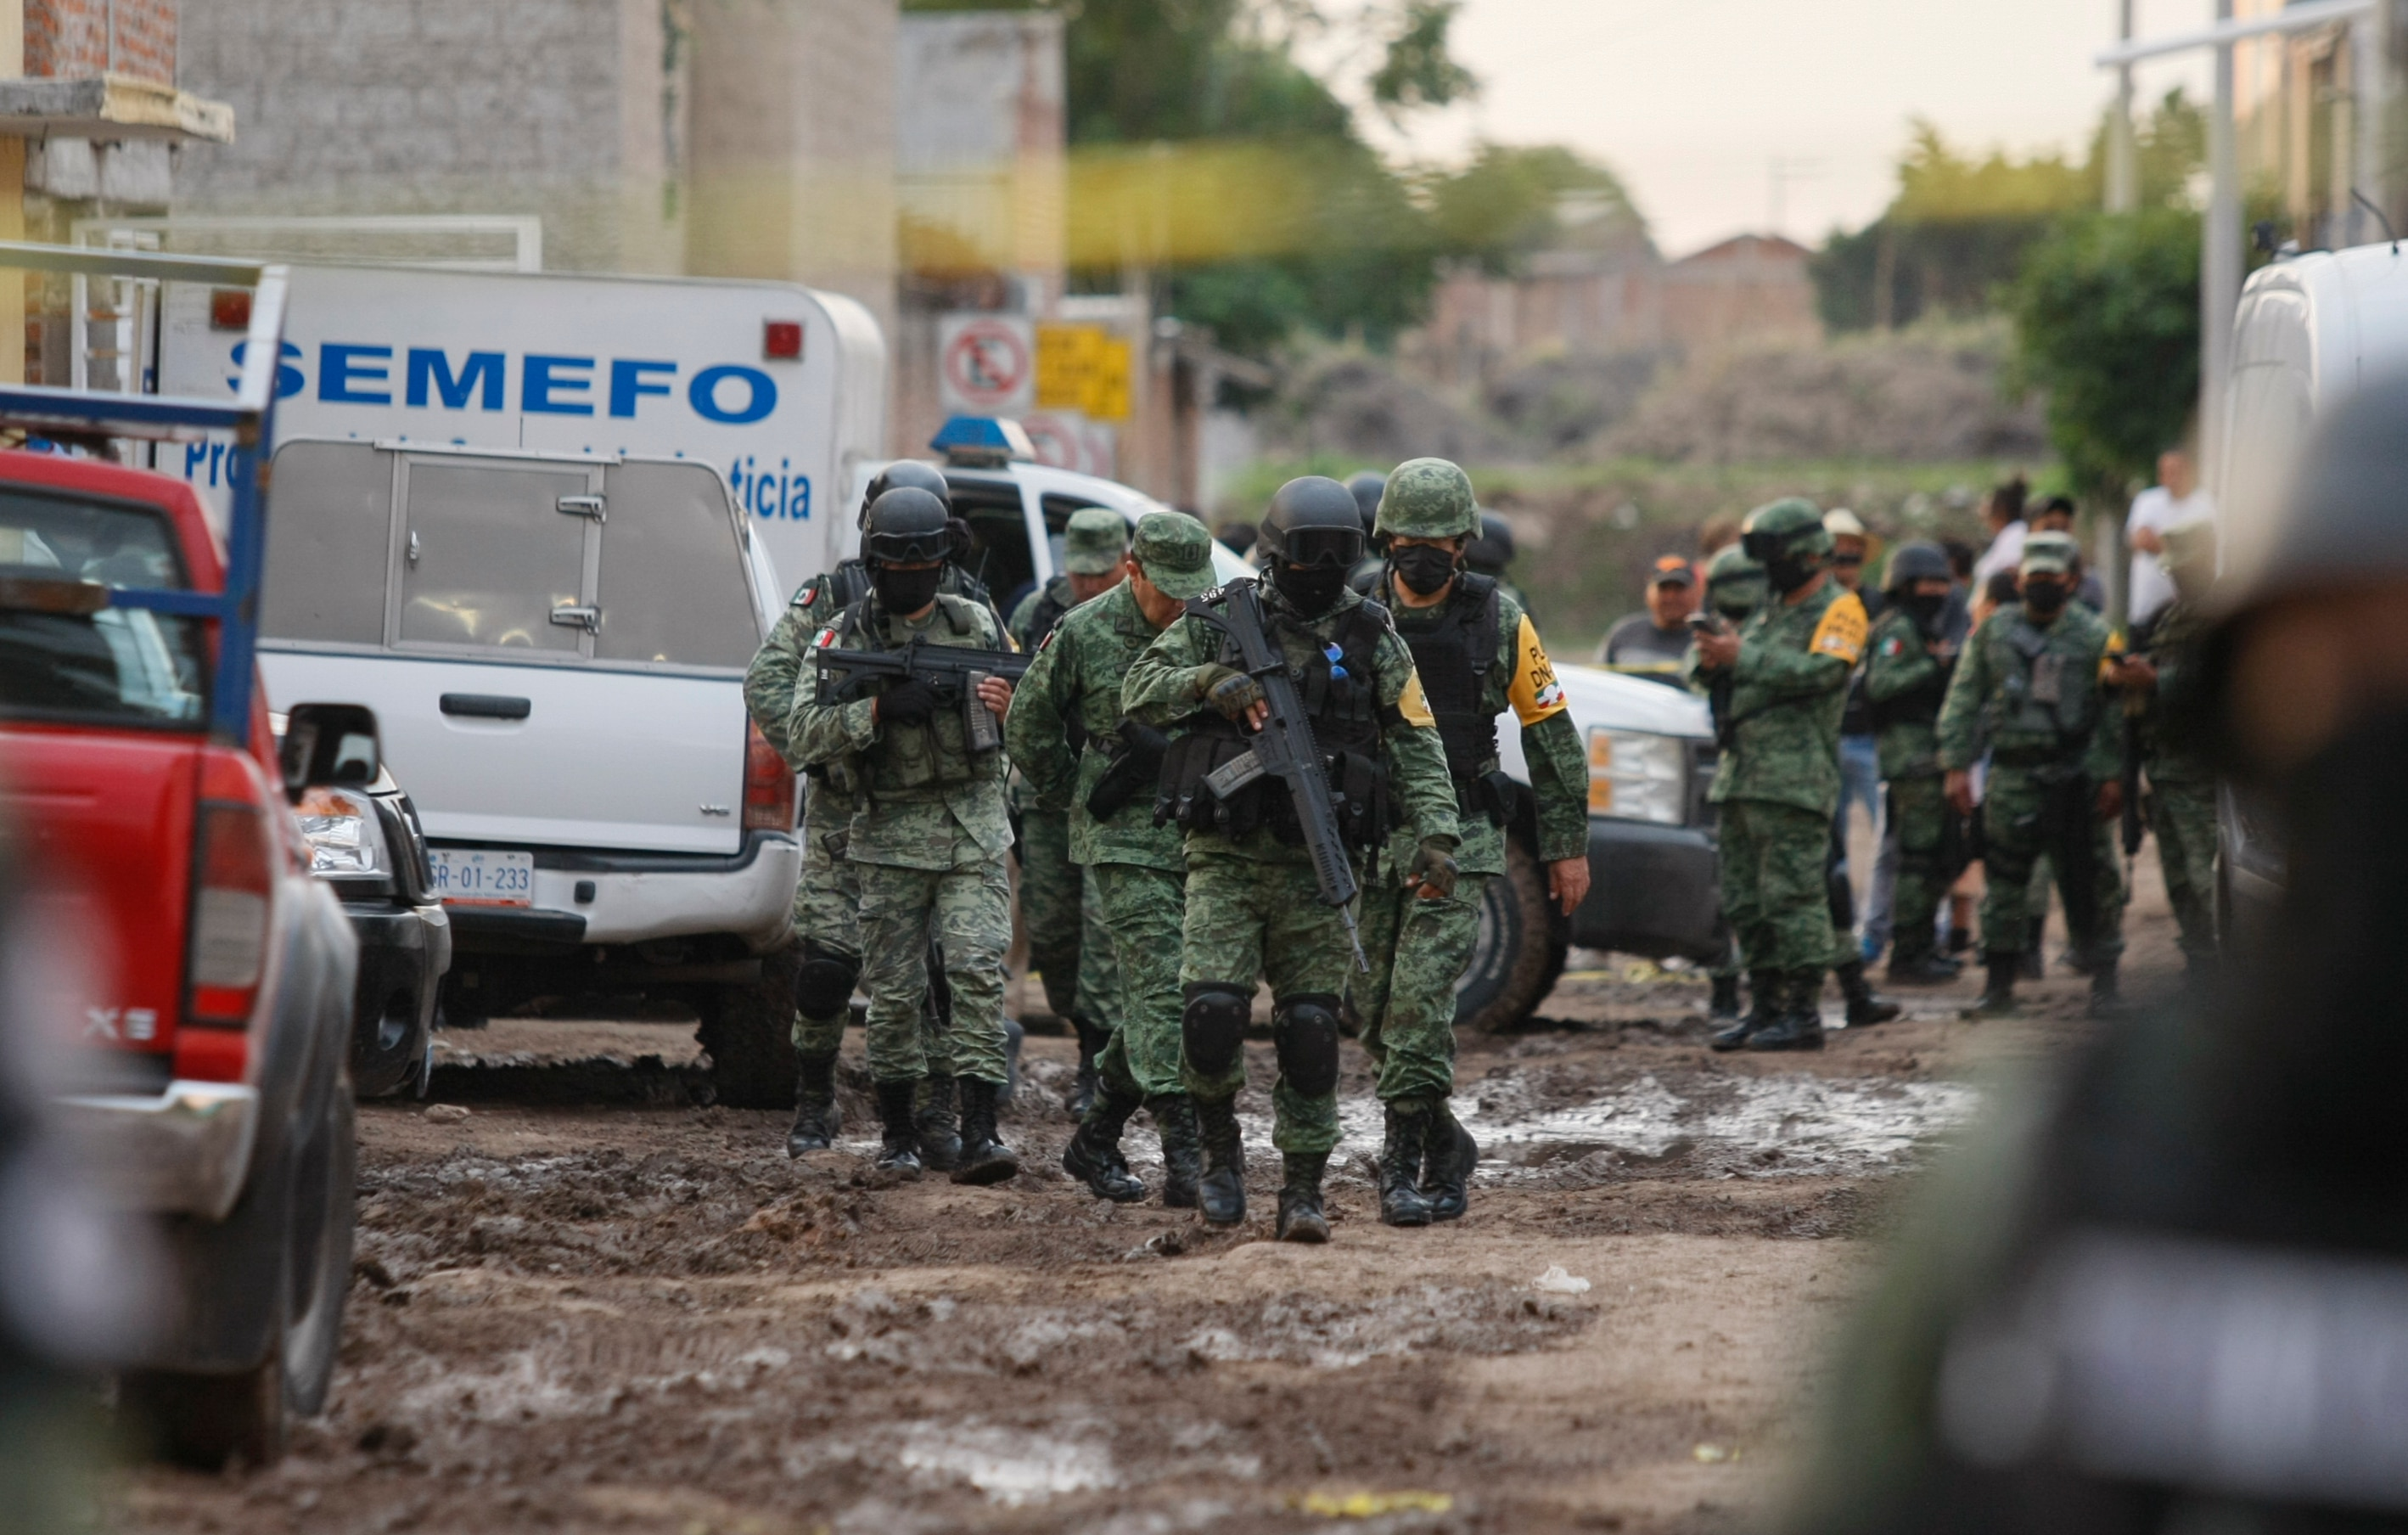 Mexican Authorities try to ID Gunmen who Killed 24 in Drug Rehab Center